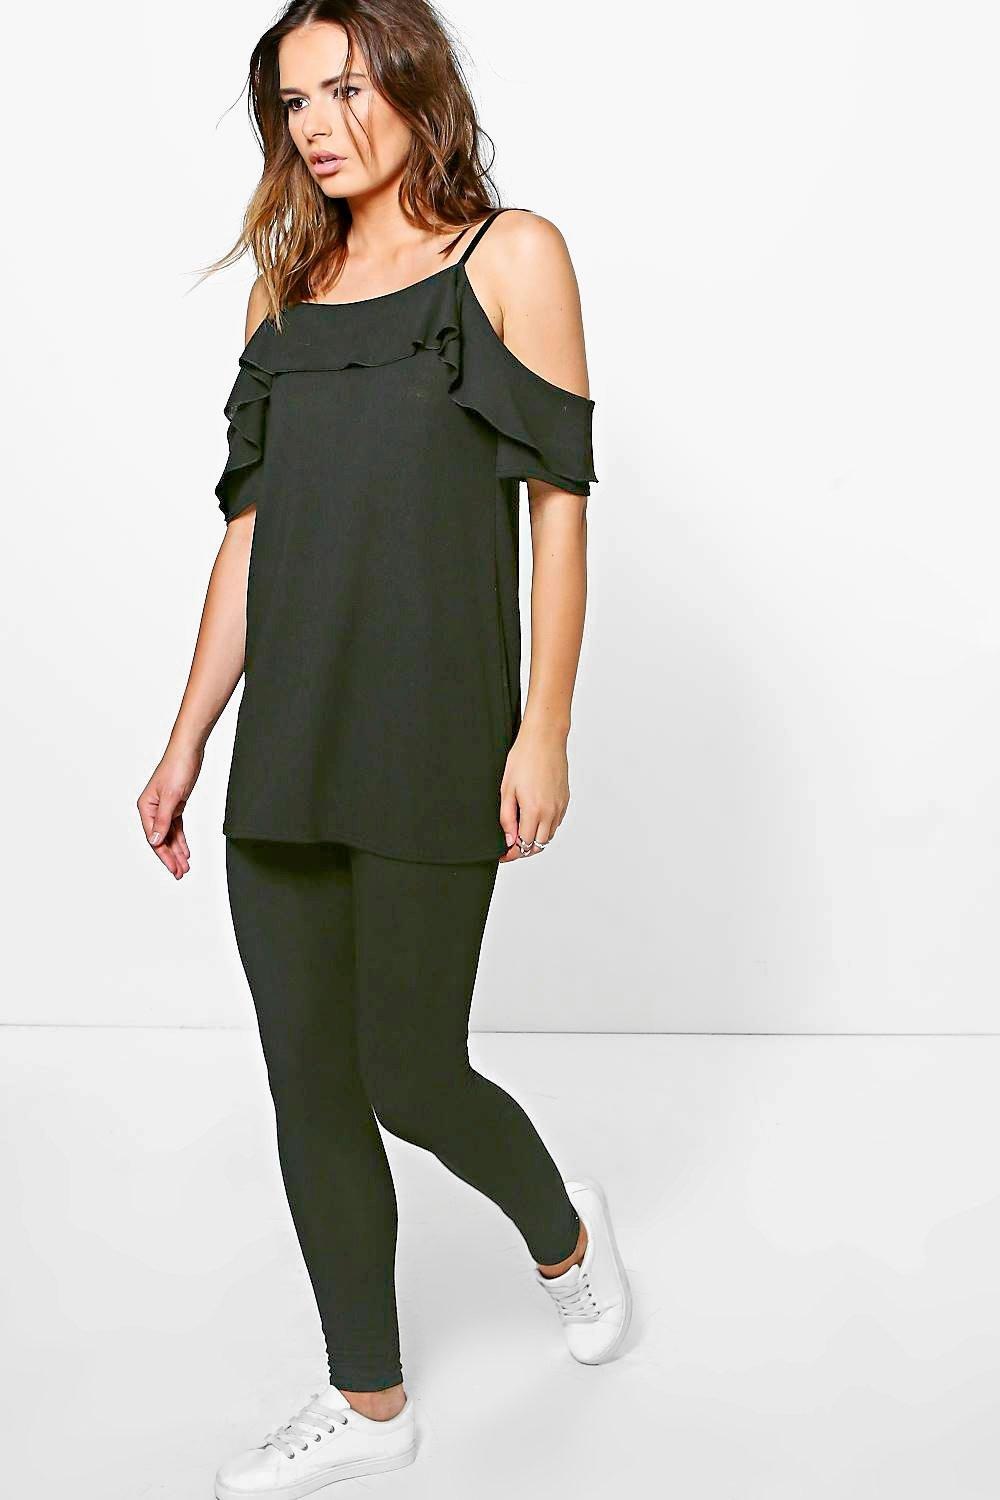 Heather Cold Shoulder Ruffle Knitted Loungewear